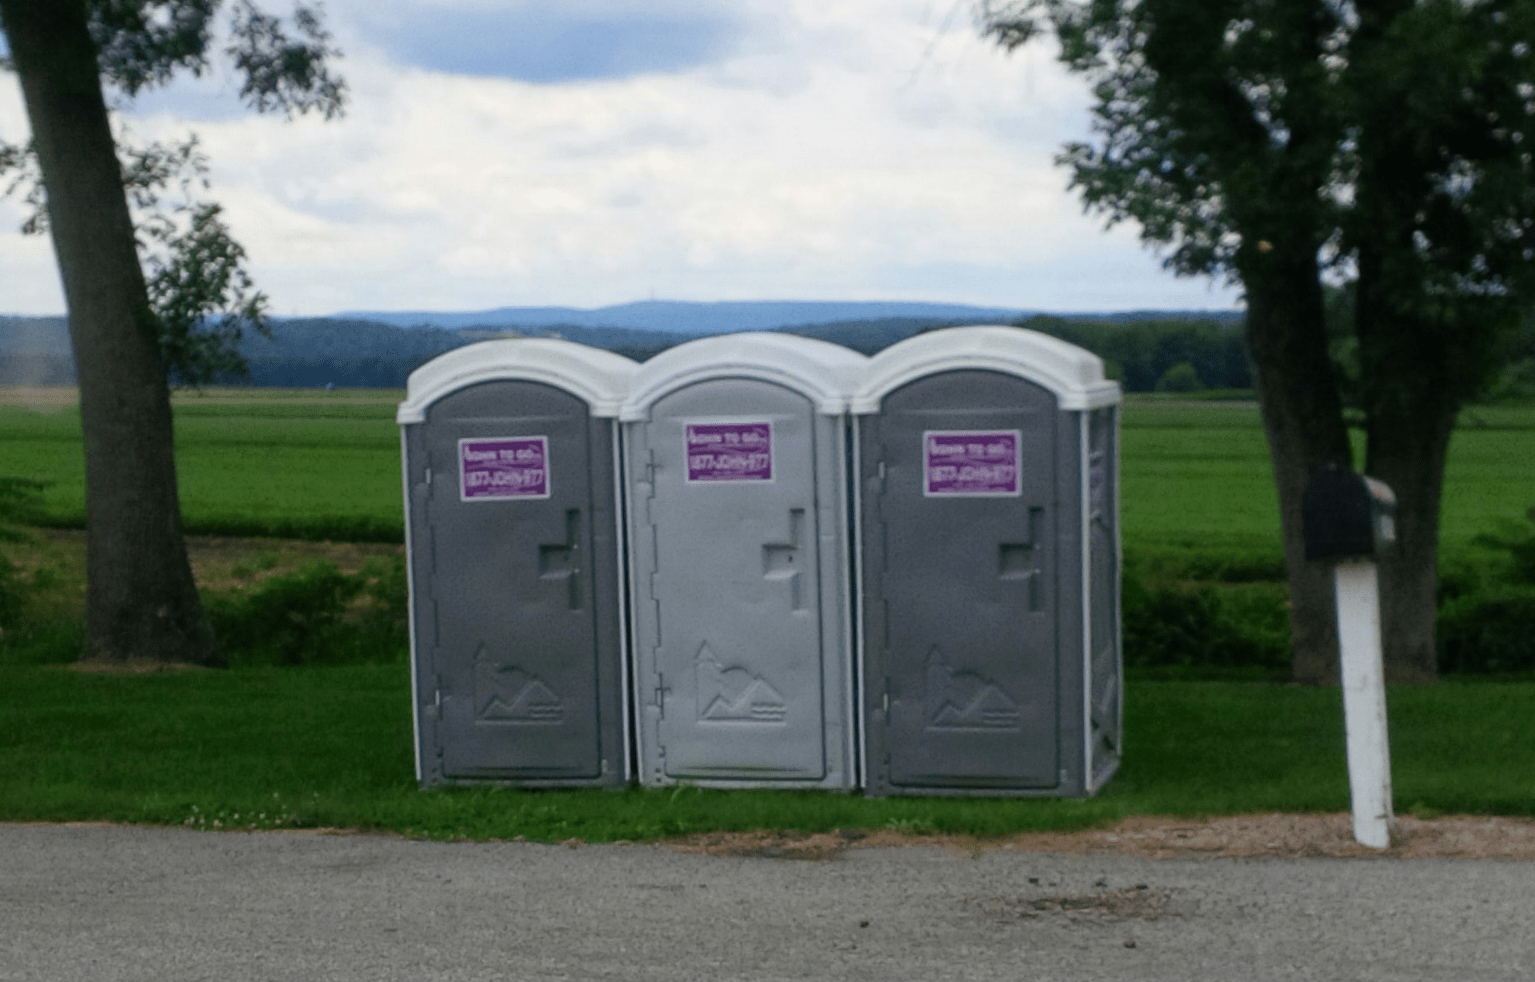 Portable toilet event units at bike race in New York